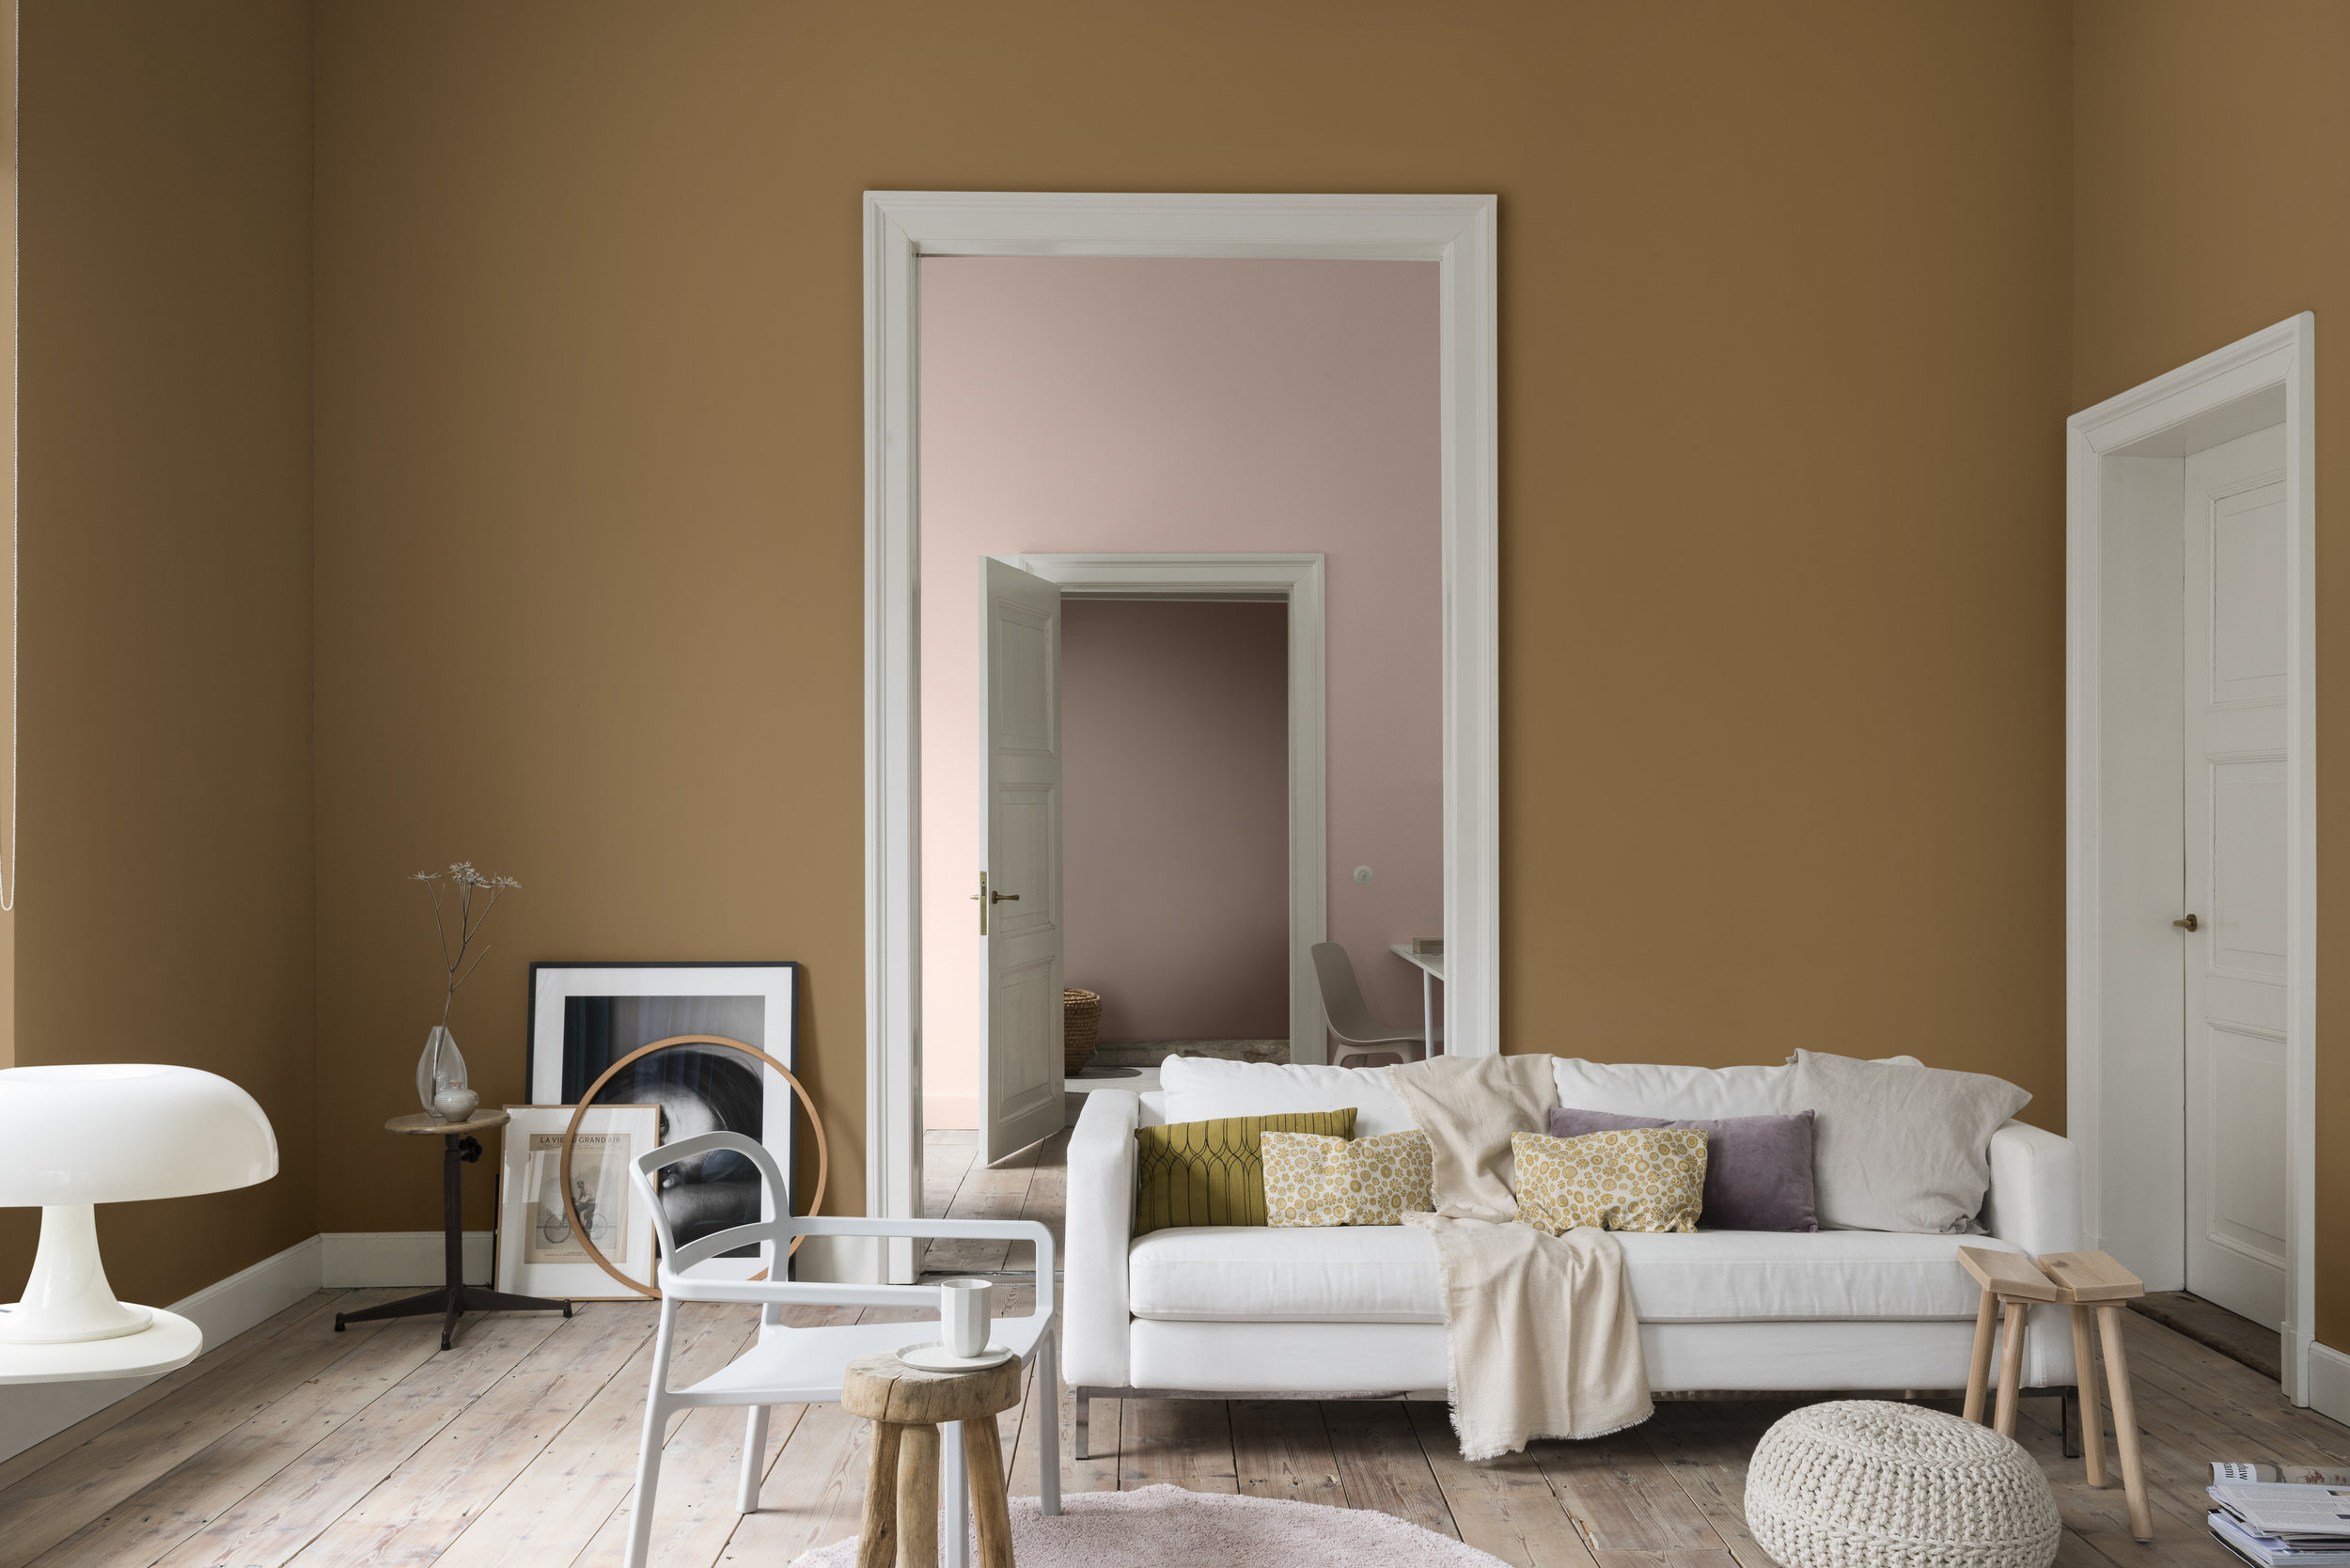 DULUX announces Colour of the Year 2019 - Spiced Honey - DREAM PALETTE 6.jpg